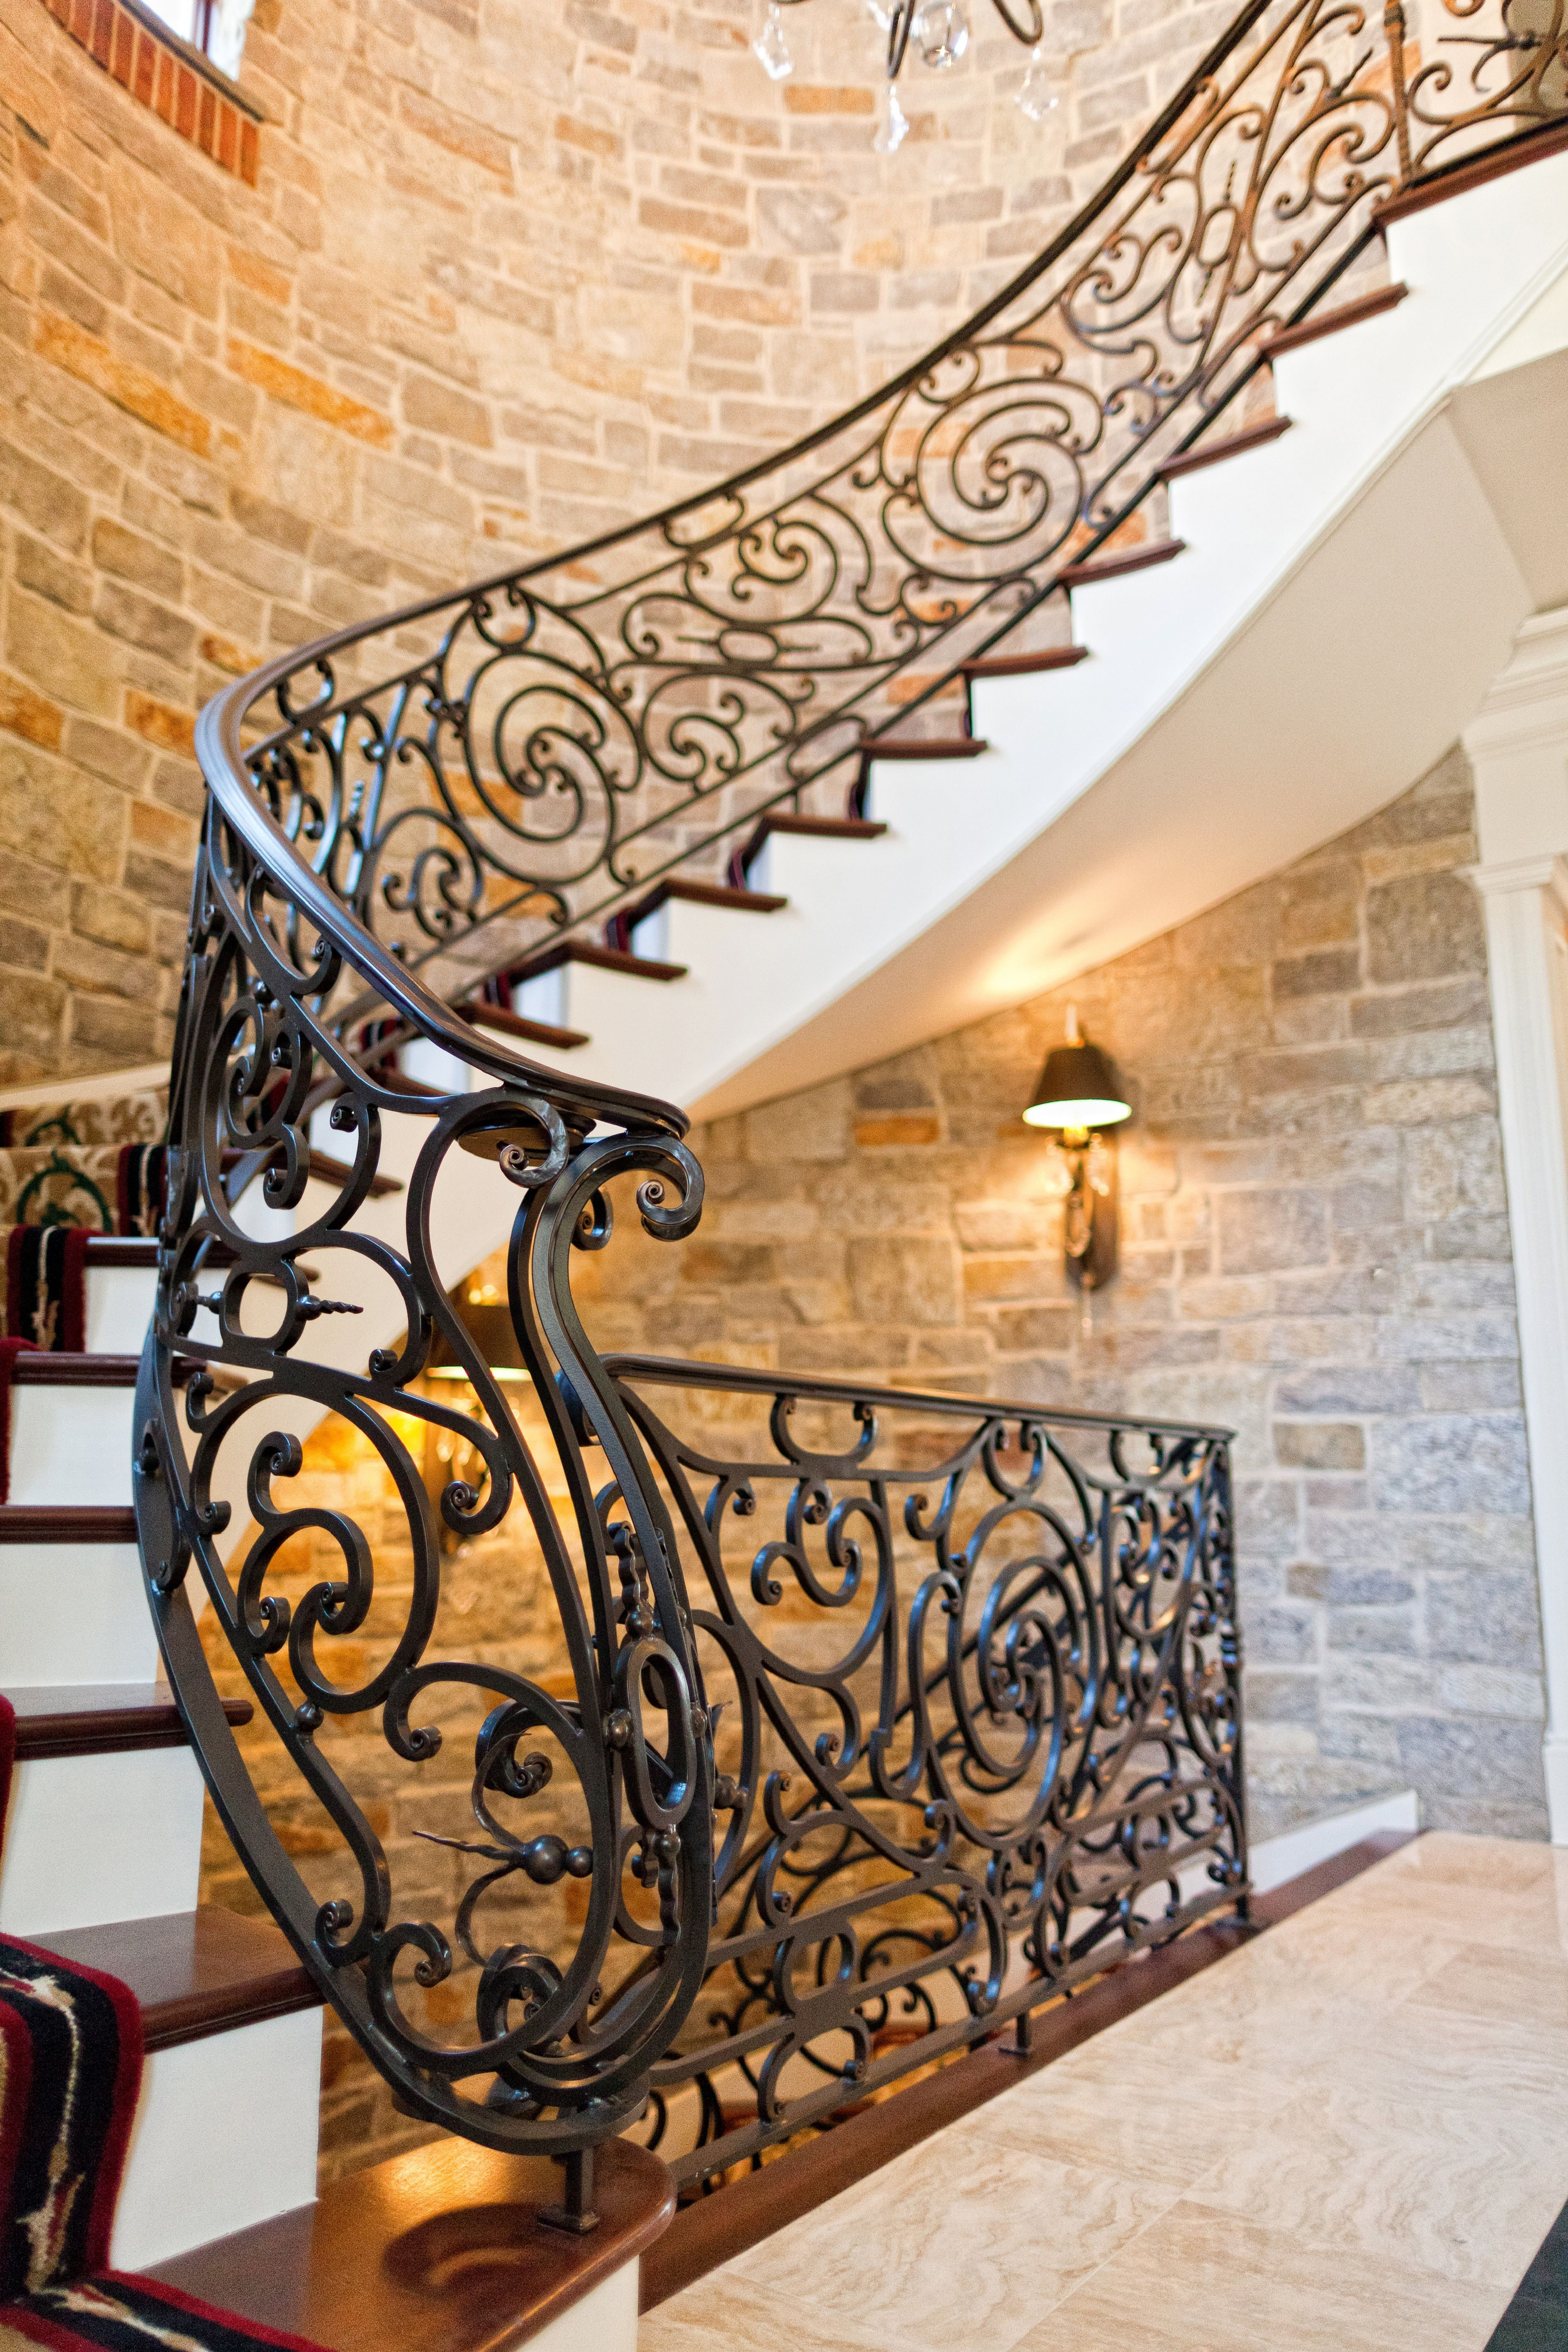 Merveilleux Gorgeous Wrought Iron Spiral Stair Railing, Hand Forged In Our Shop In  Lancaster, Pa.